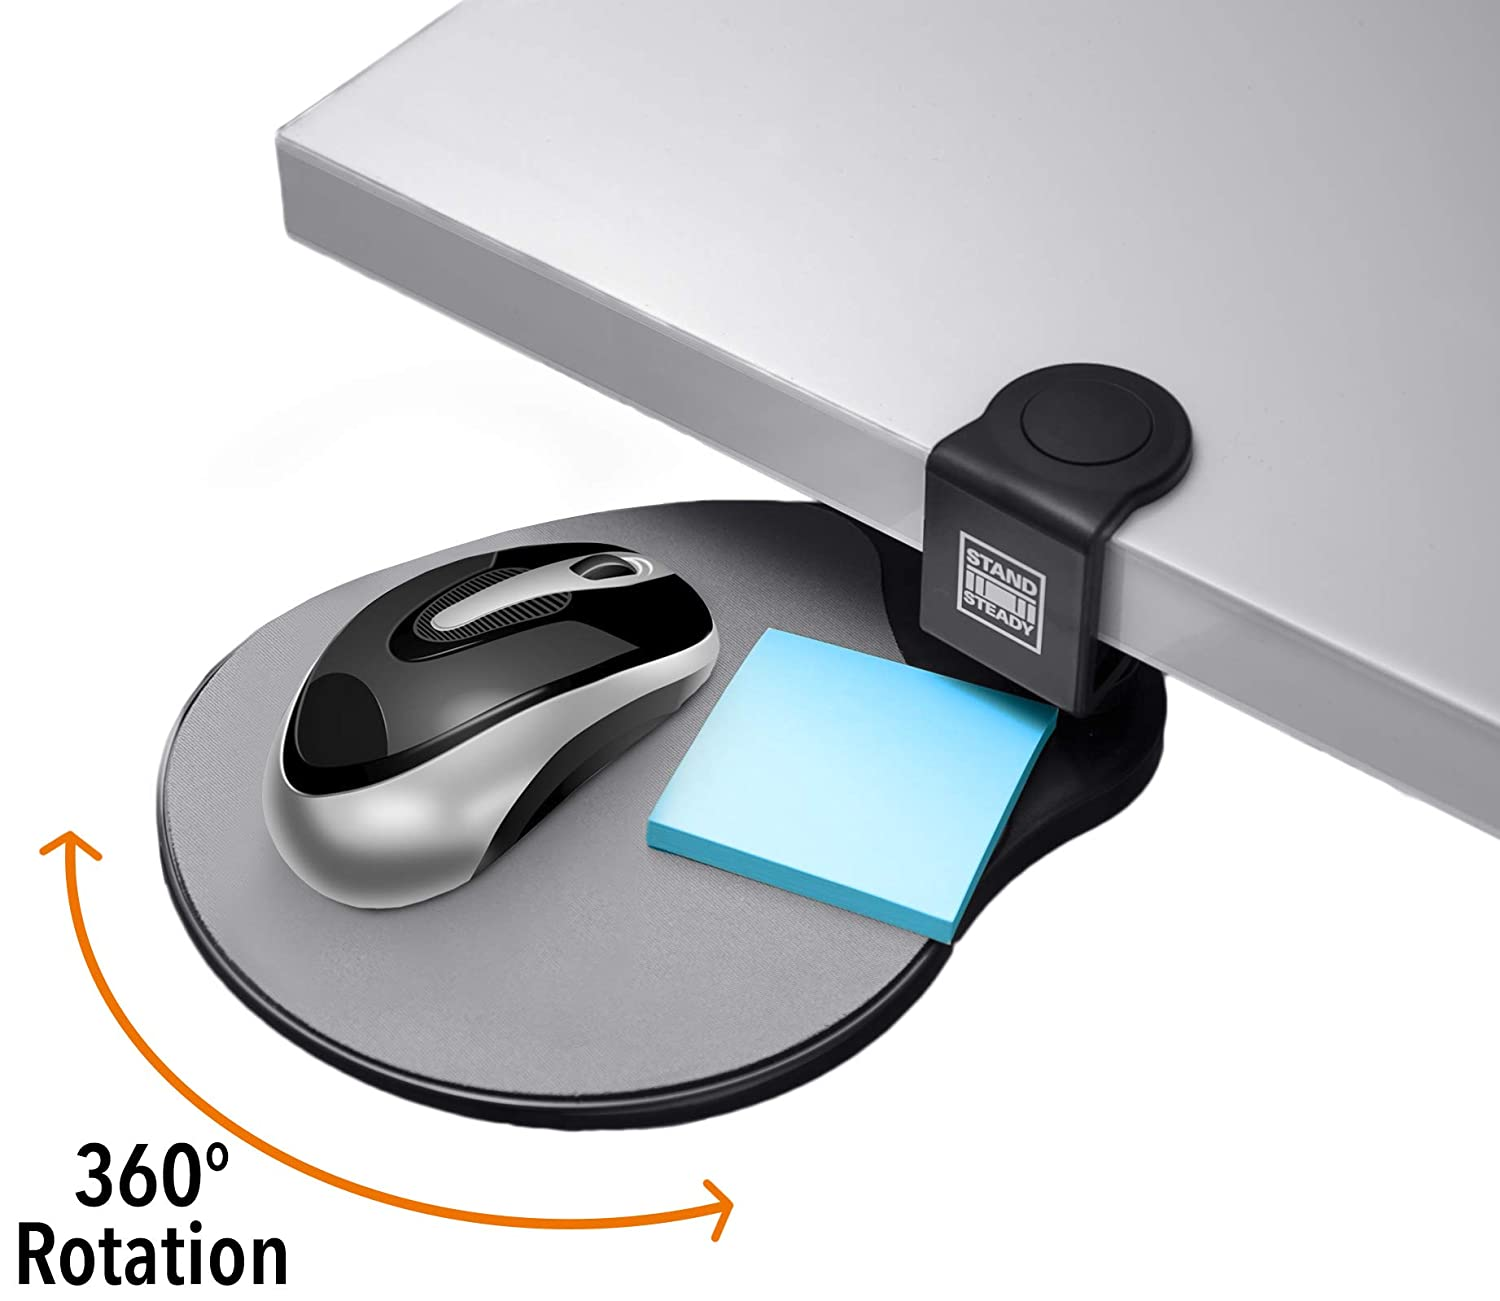 Original Desk Potato by Stand Steady - Easy Clamp Attachable Desk Shelf/Mouse Pad/Buy 2 and Make a Keyboard Tray! Best-Seller!